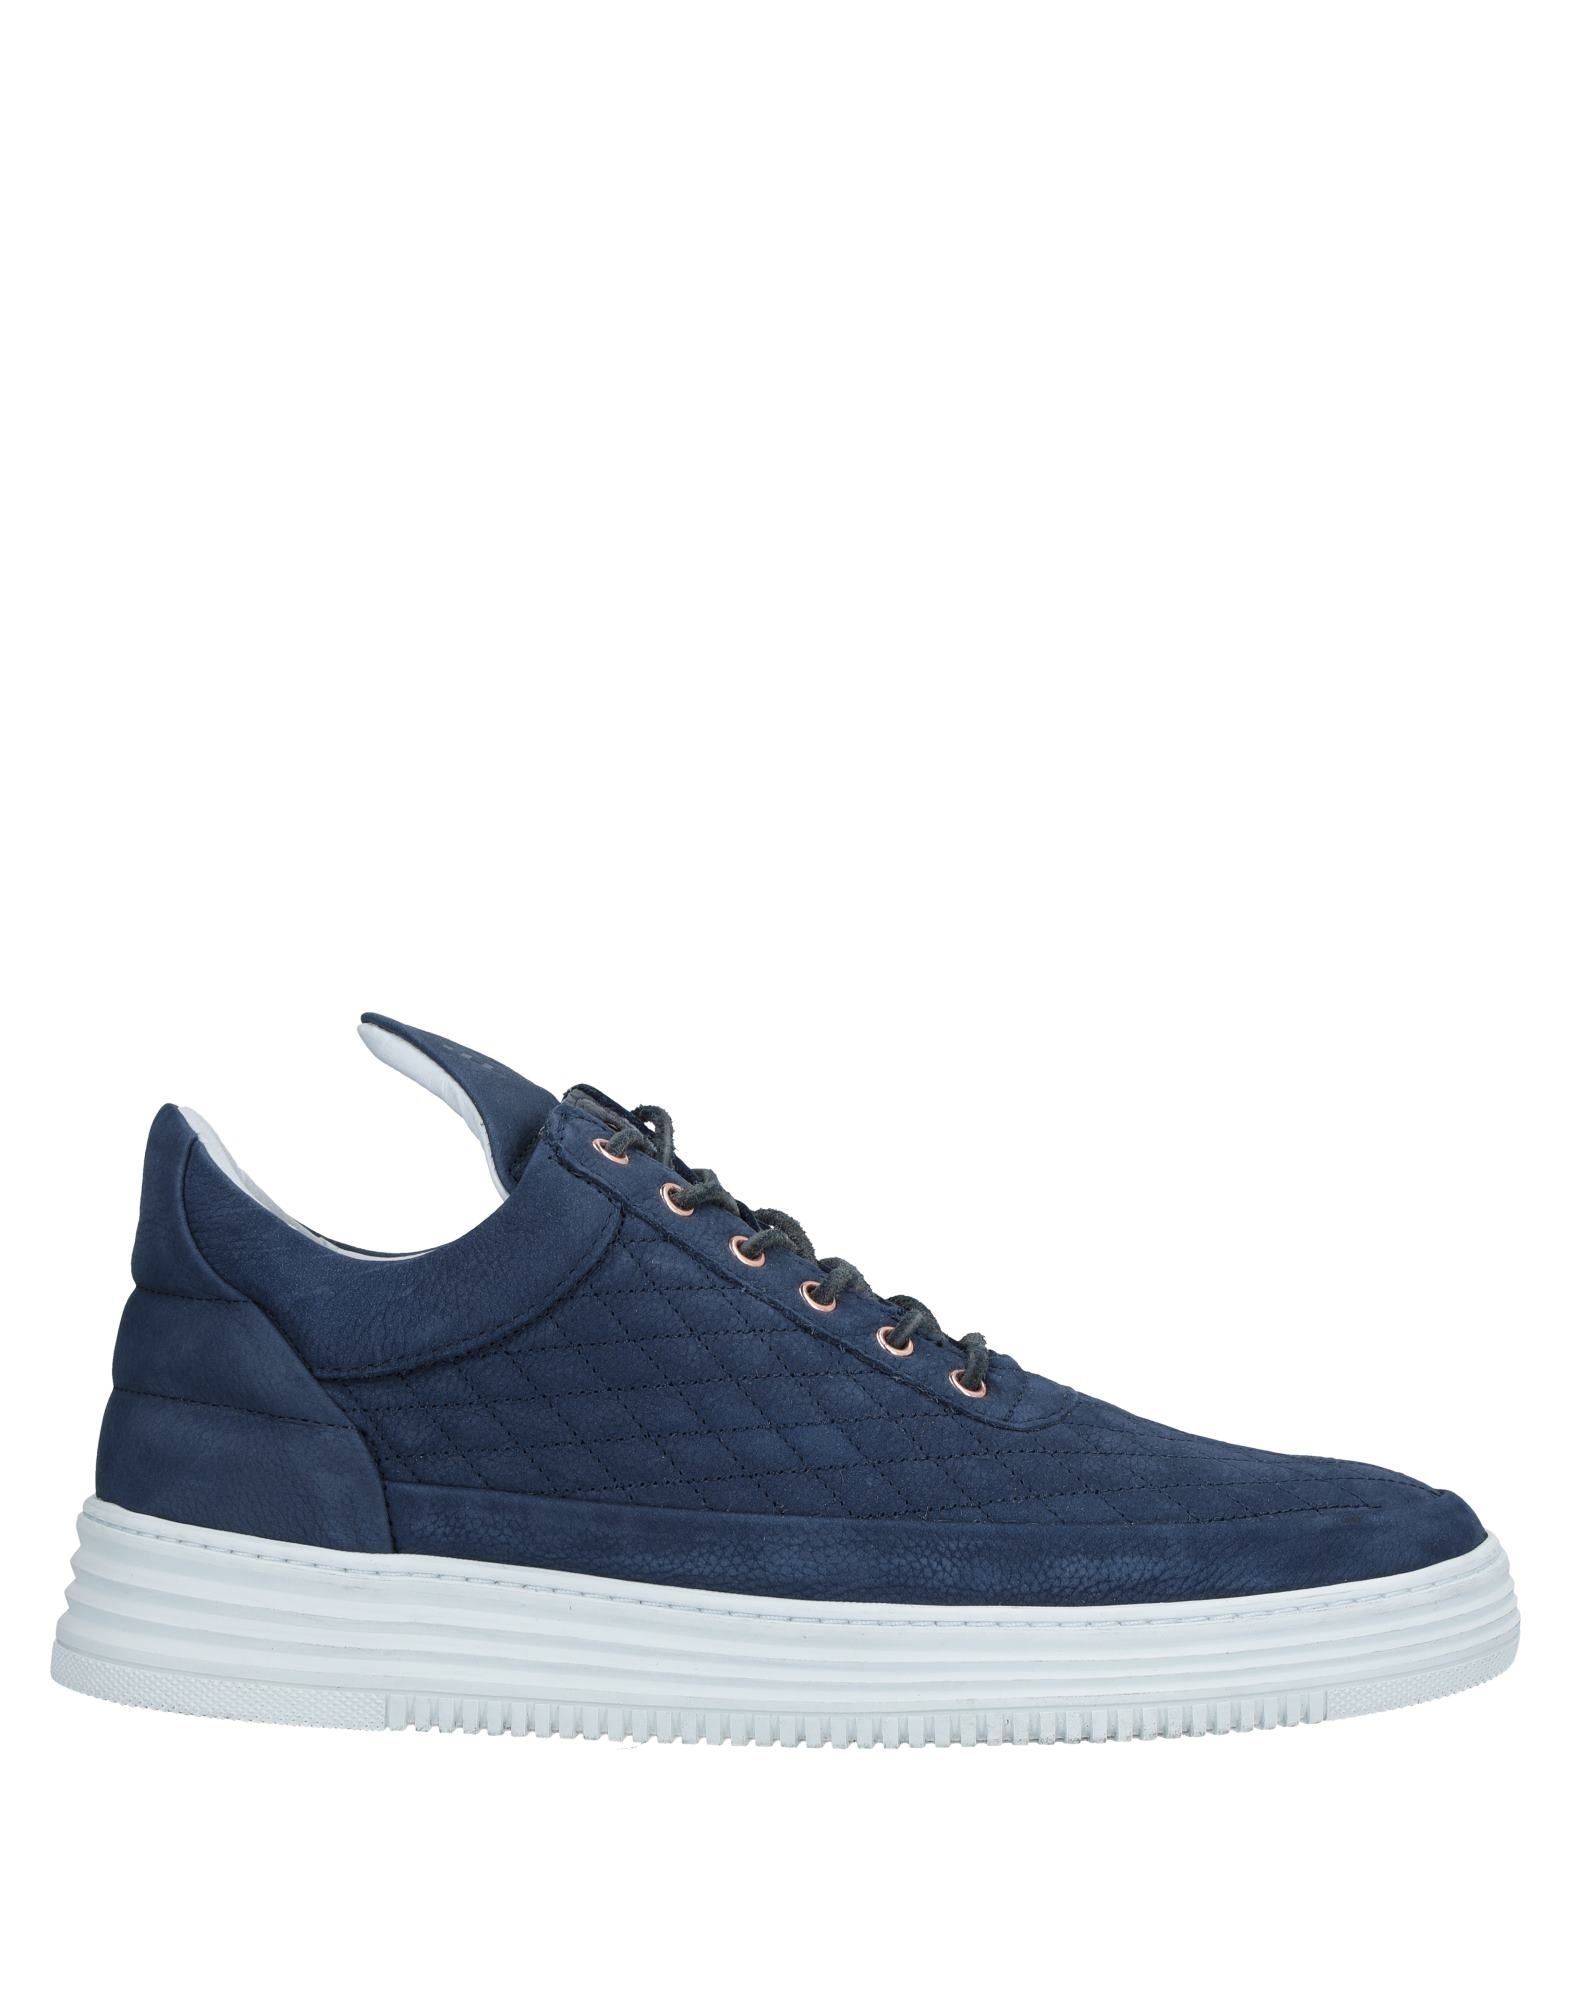 Sneakers Filling Pieces Uomo - 11536503SA